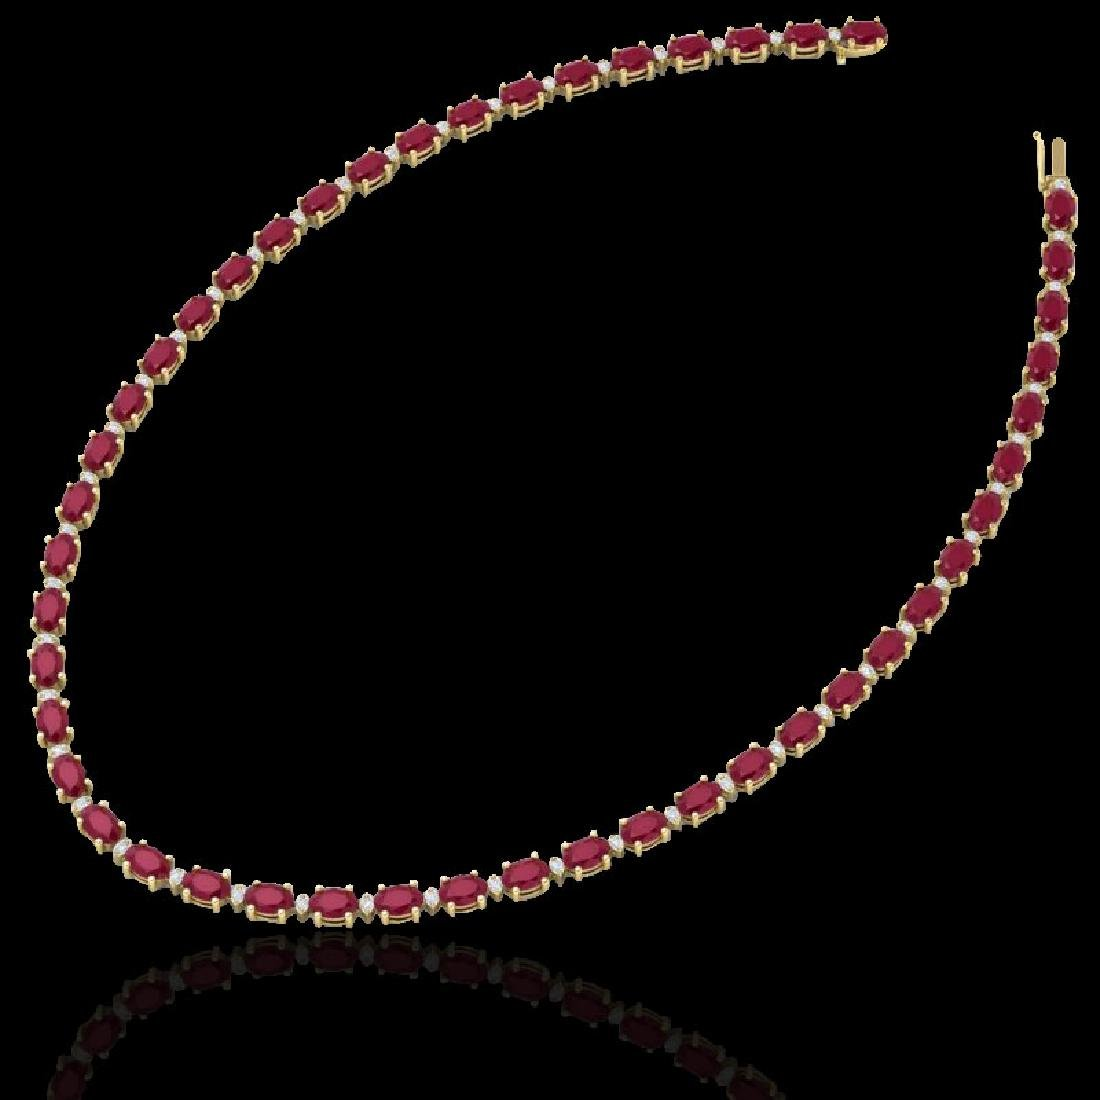 35 CTW Ruby & VS/SI Diamond Eternity Tennis Necklace - 2